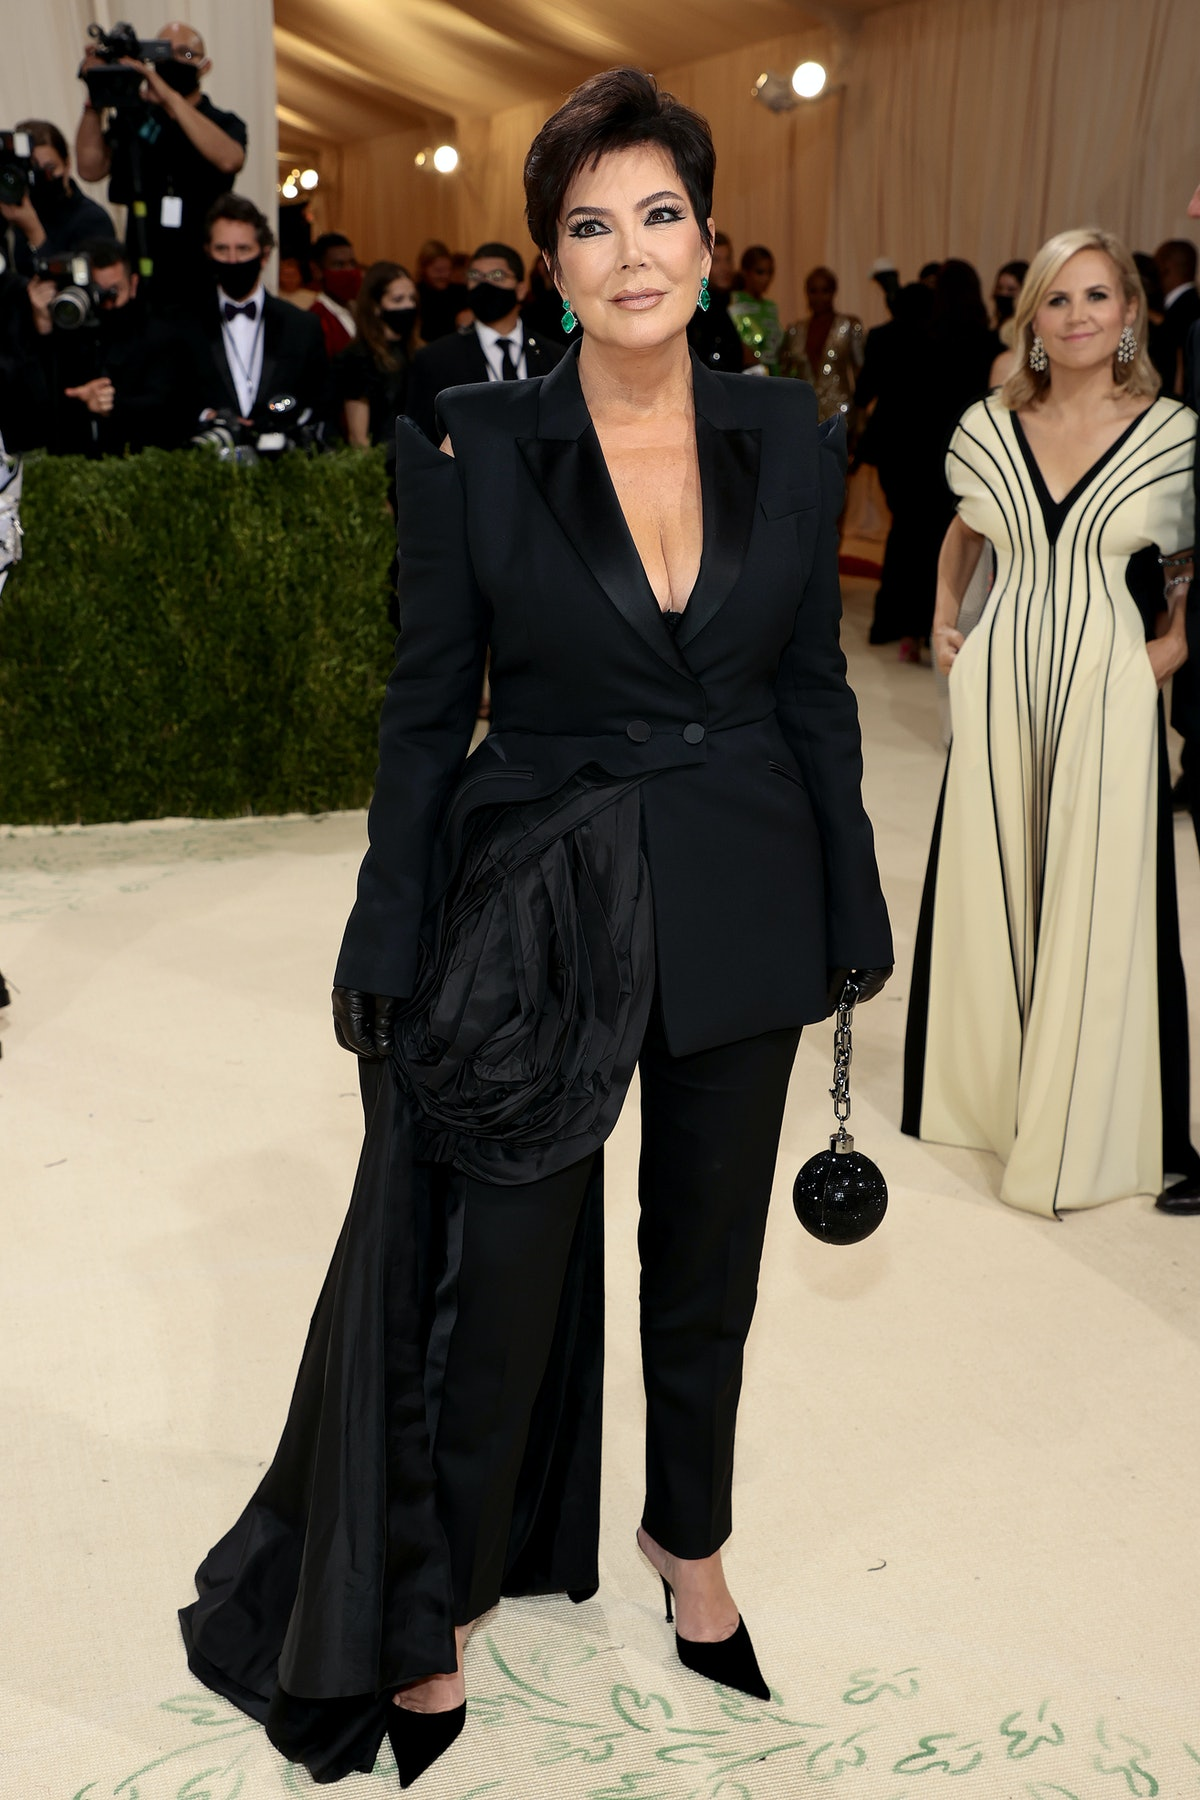 Kris Jenner attends The 2021 Met Gala Celebrating In America: A Lexicon Of Fashion at Metropolitan M...